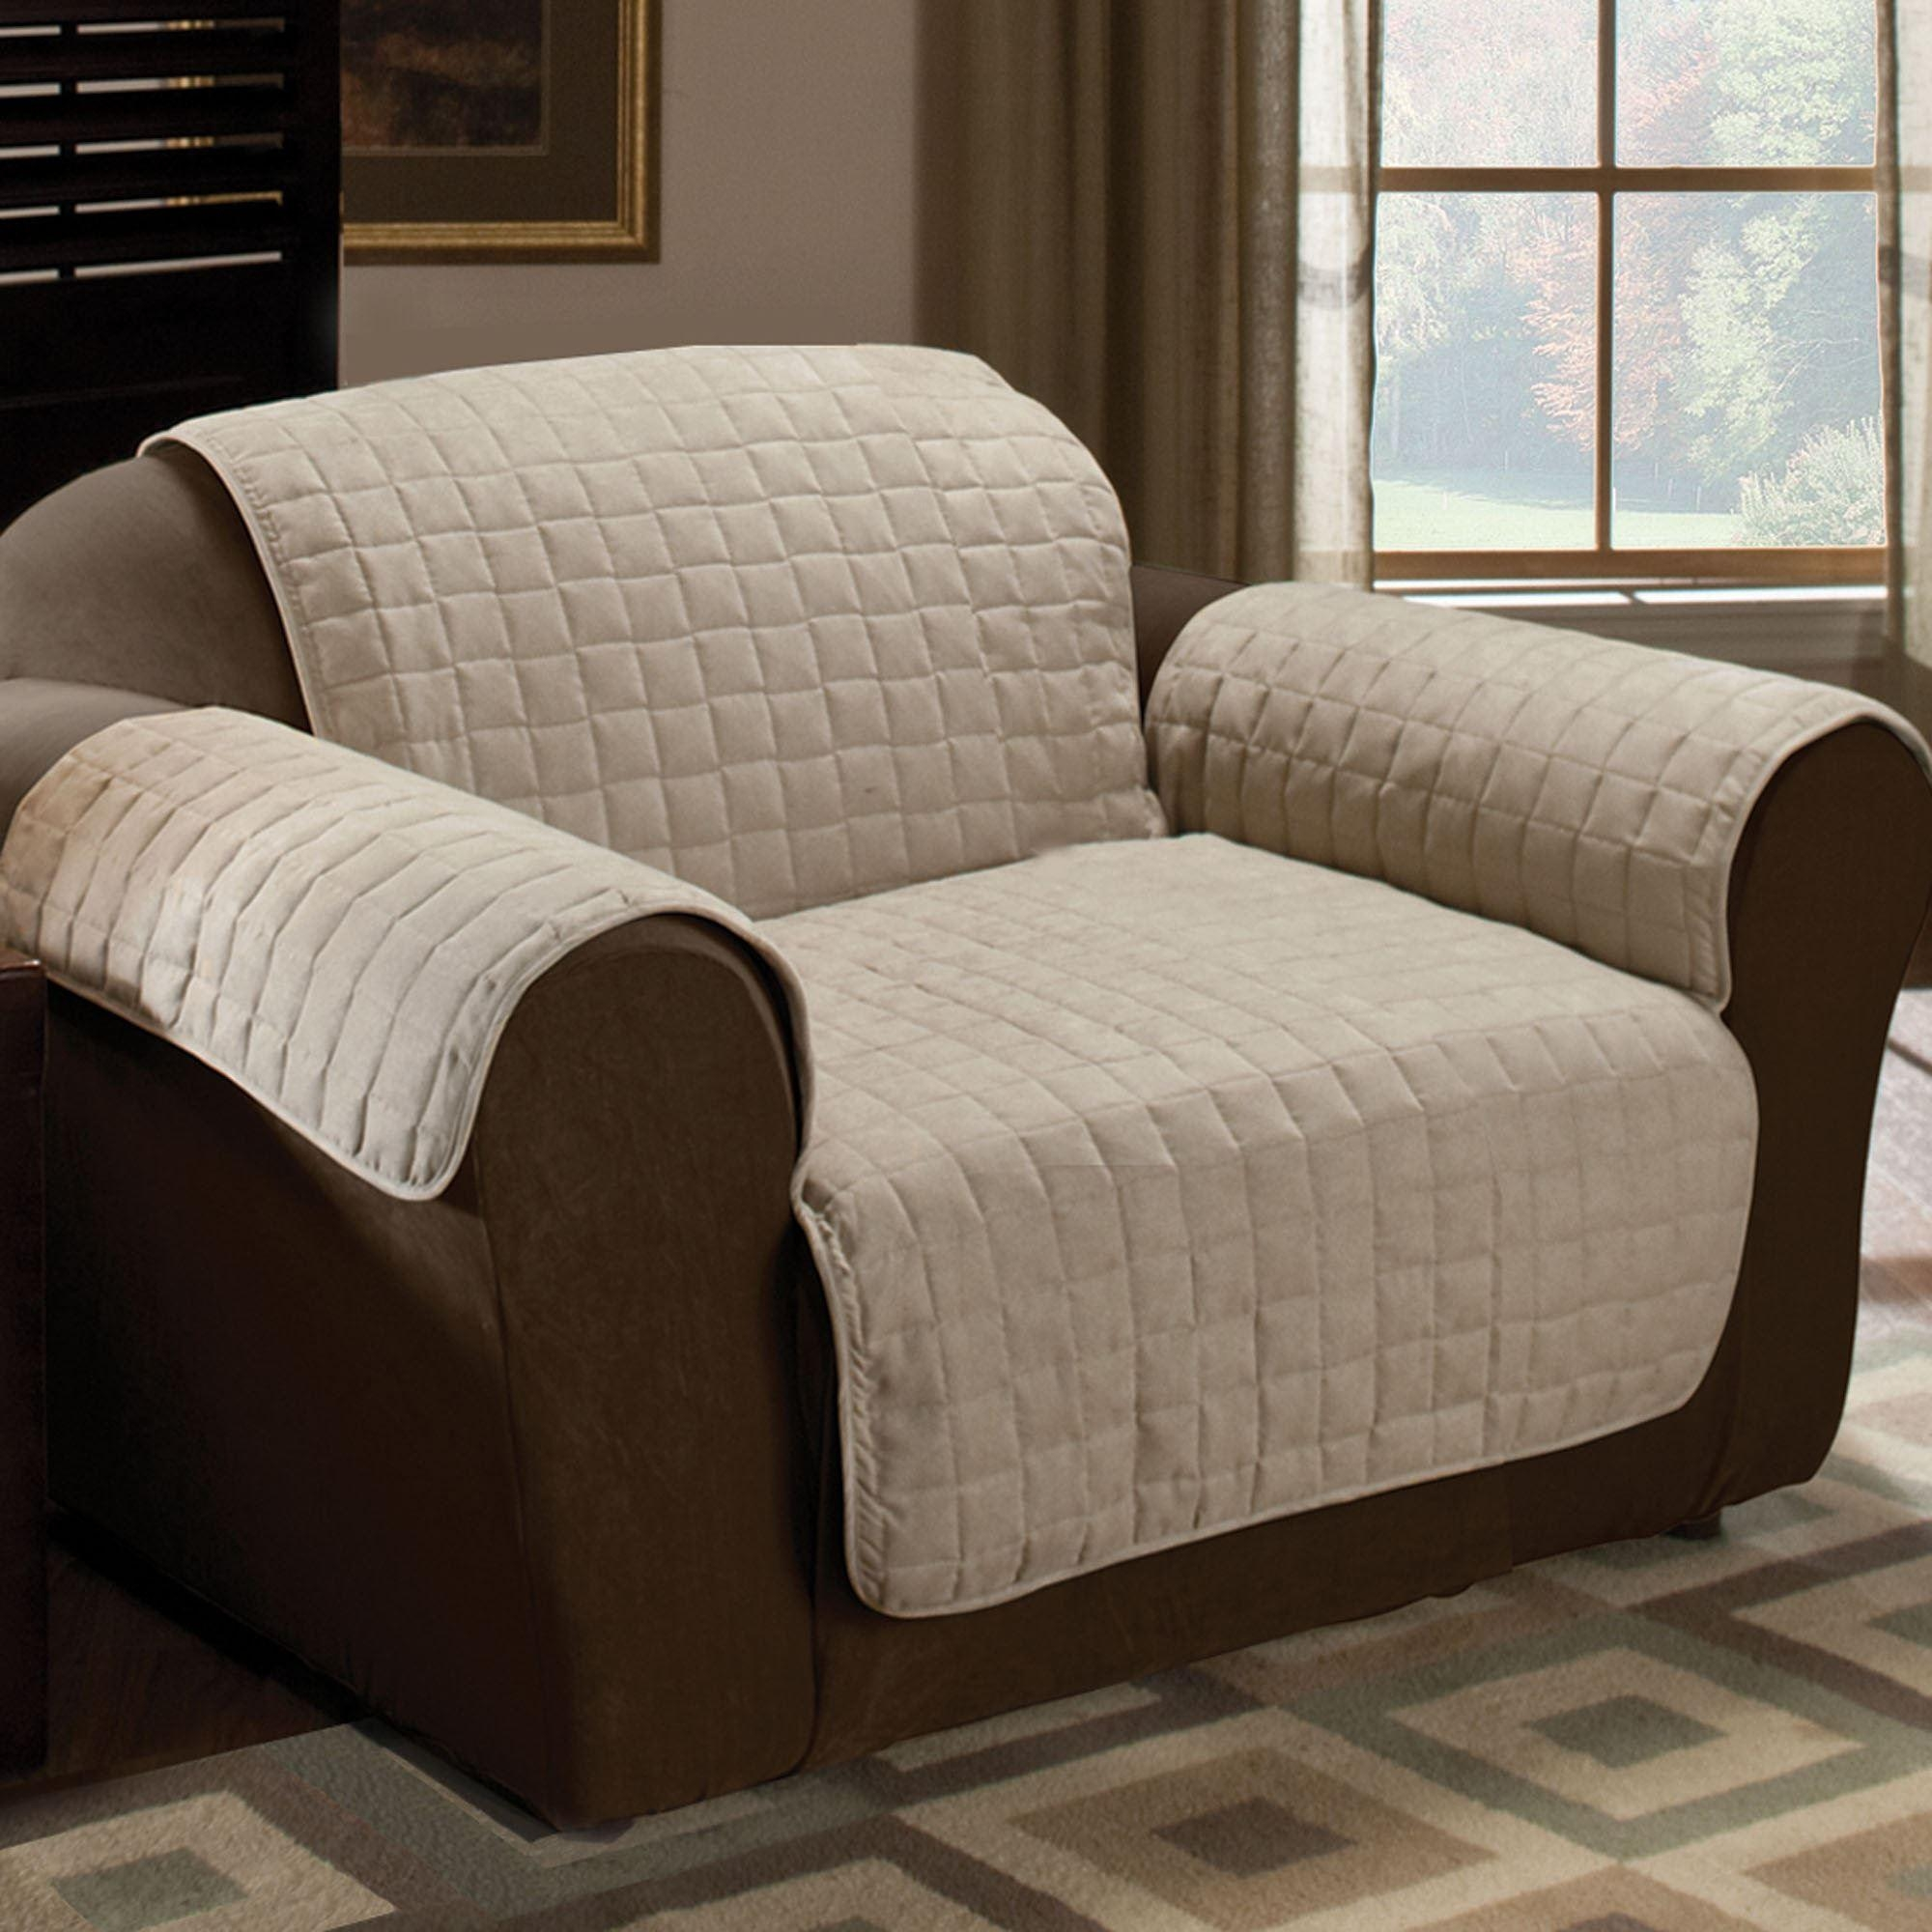 Sofas Center : H077 001 4 Fleece Reversible Petrniture Sofa Covers With Covers For Sofas (View 13 of 20)